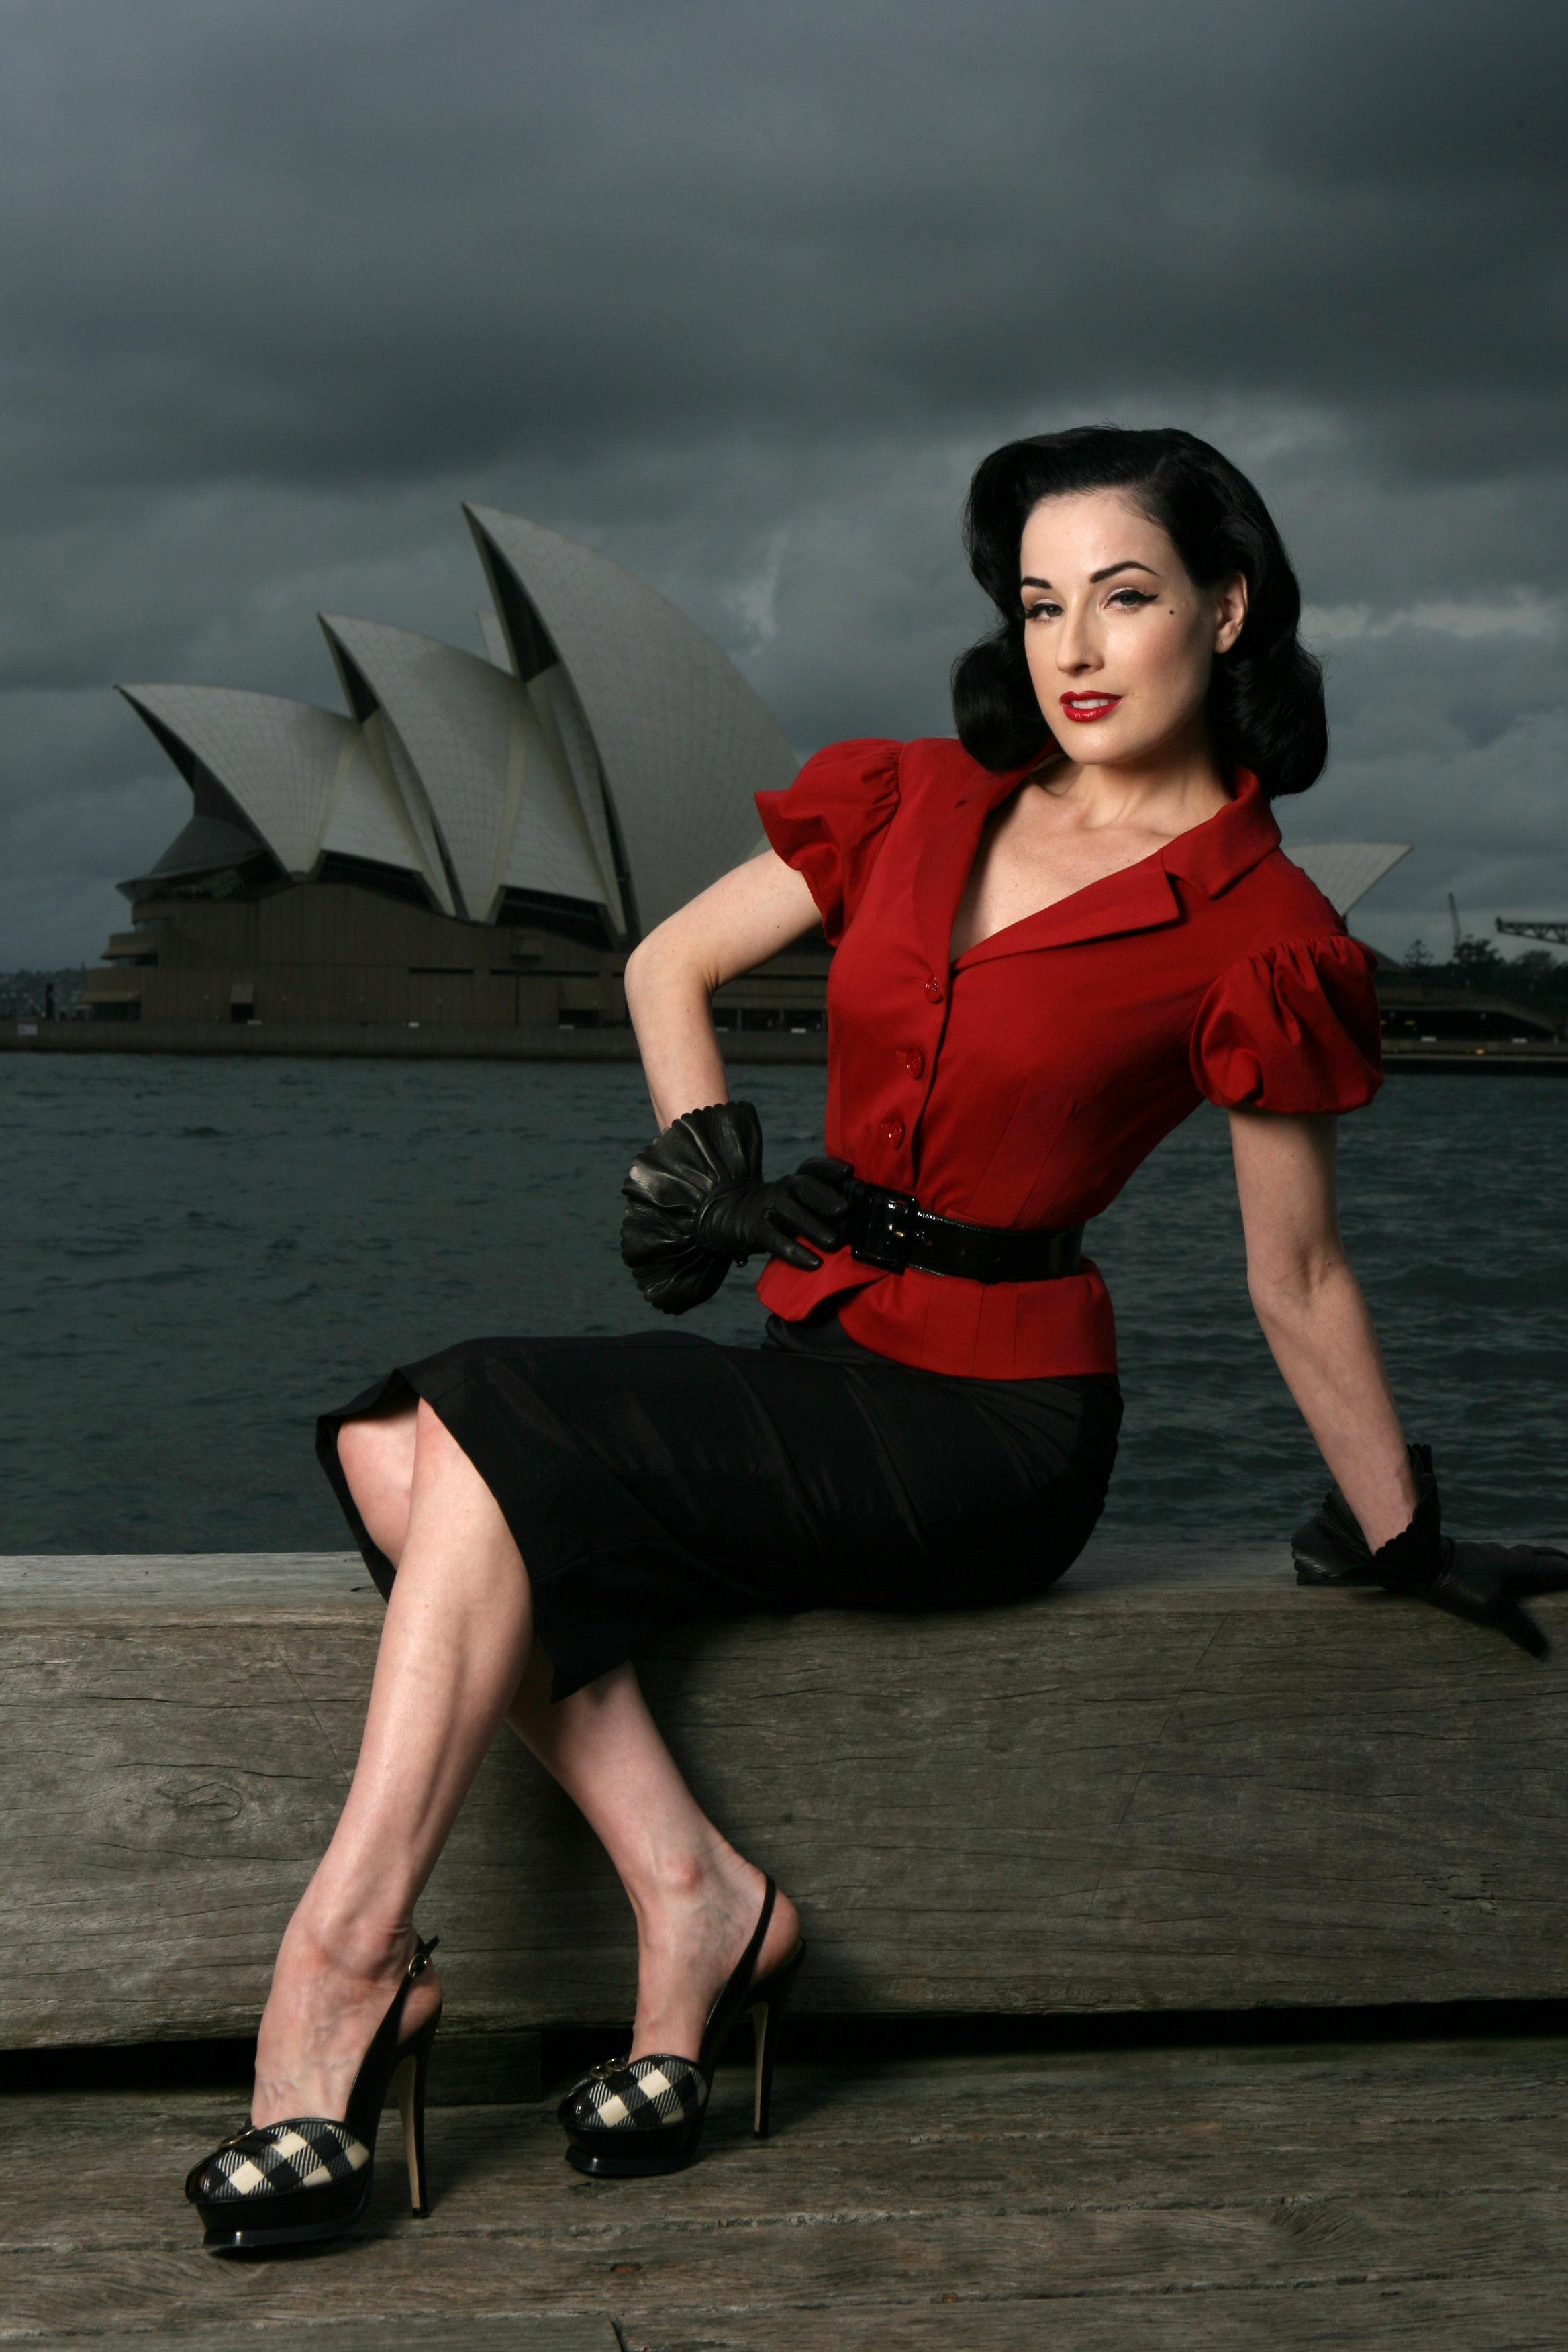 Dita Von Teese photo 515 of 903 pics, wallpaper - photo #345196 ... Dita Von Teese